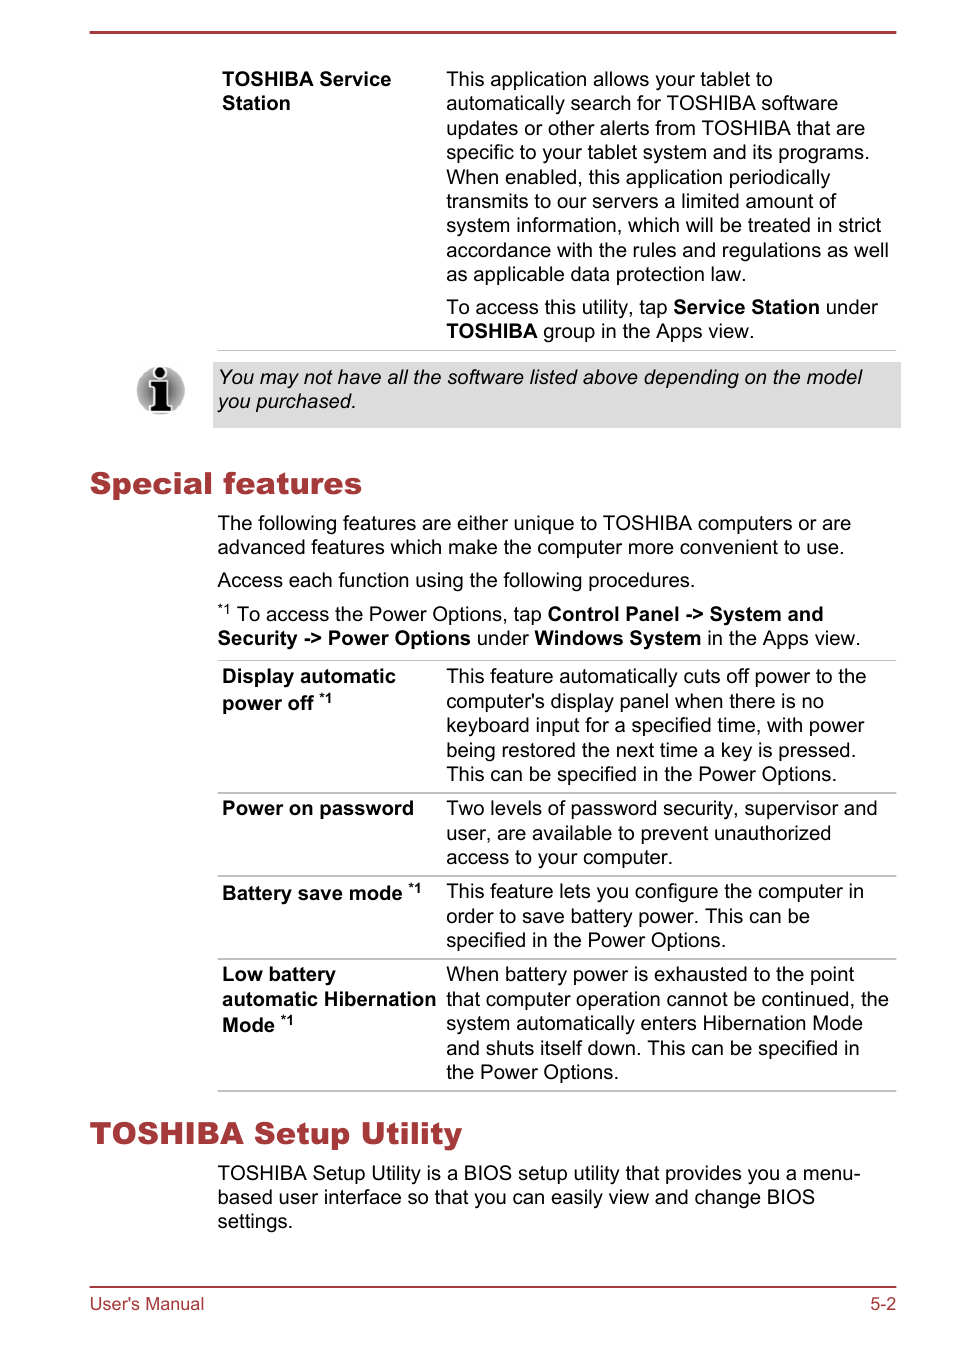 Special features, Toshiba setup utility, Special features -2